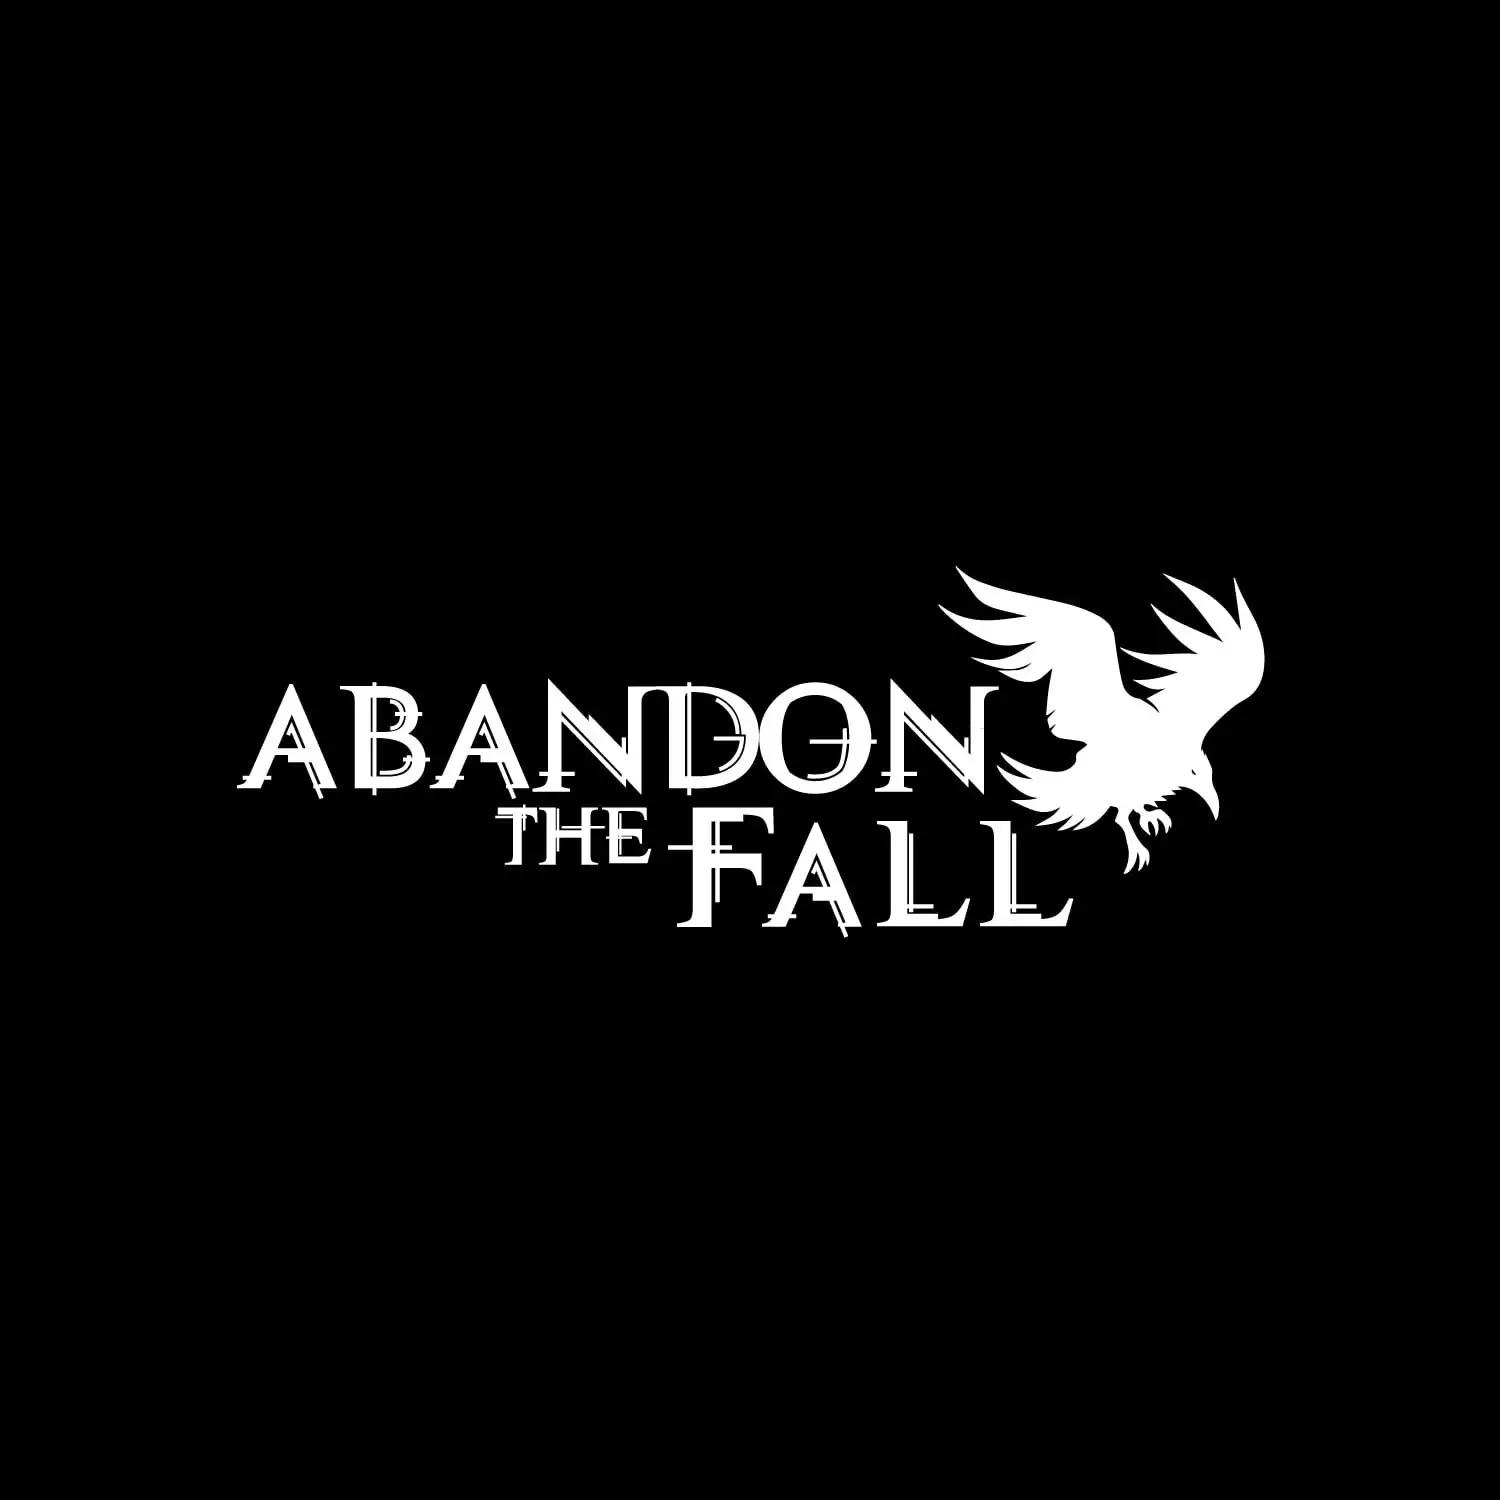 0010_AbandonTheFall_Black_V1-01